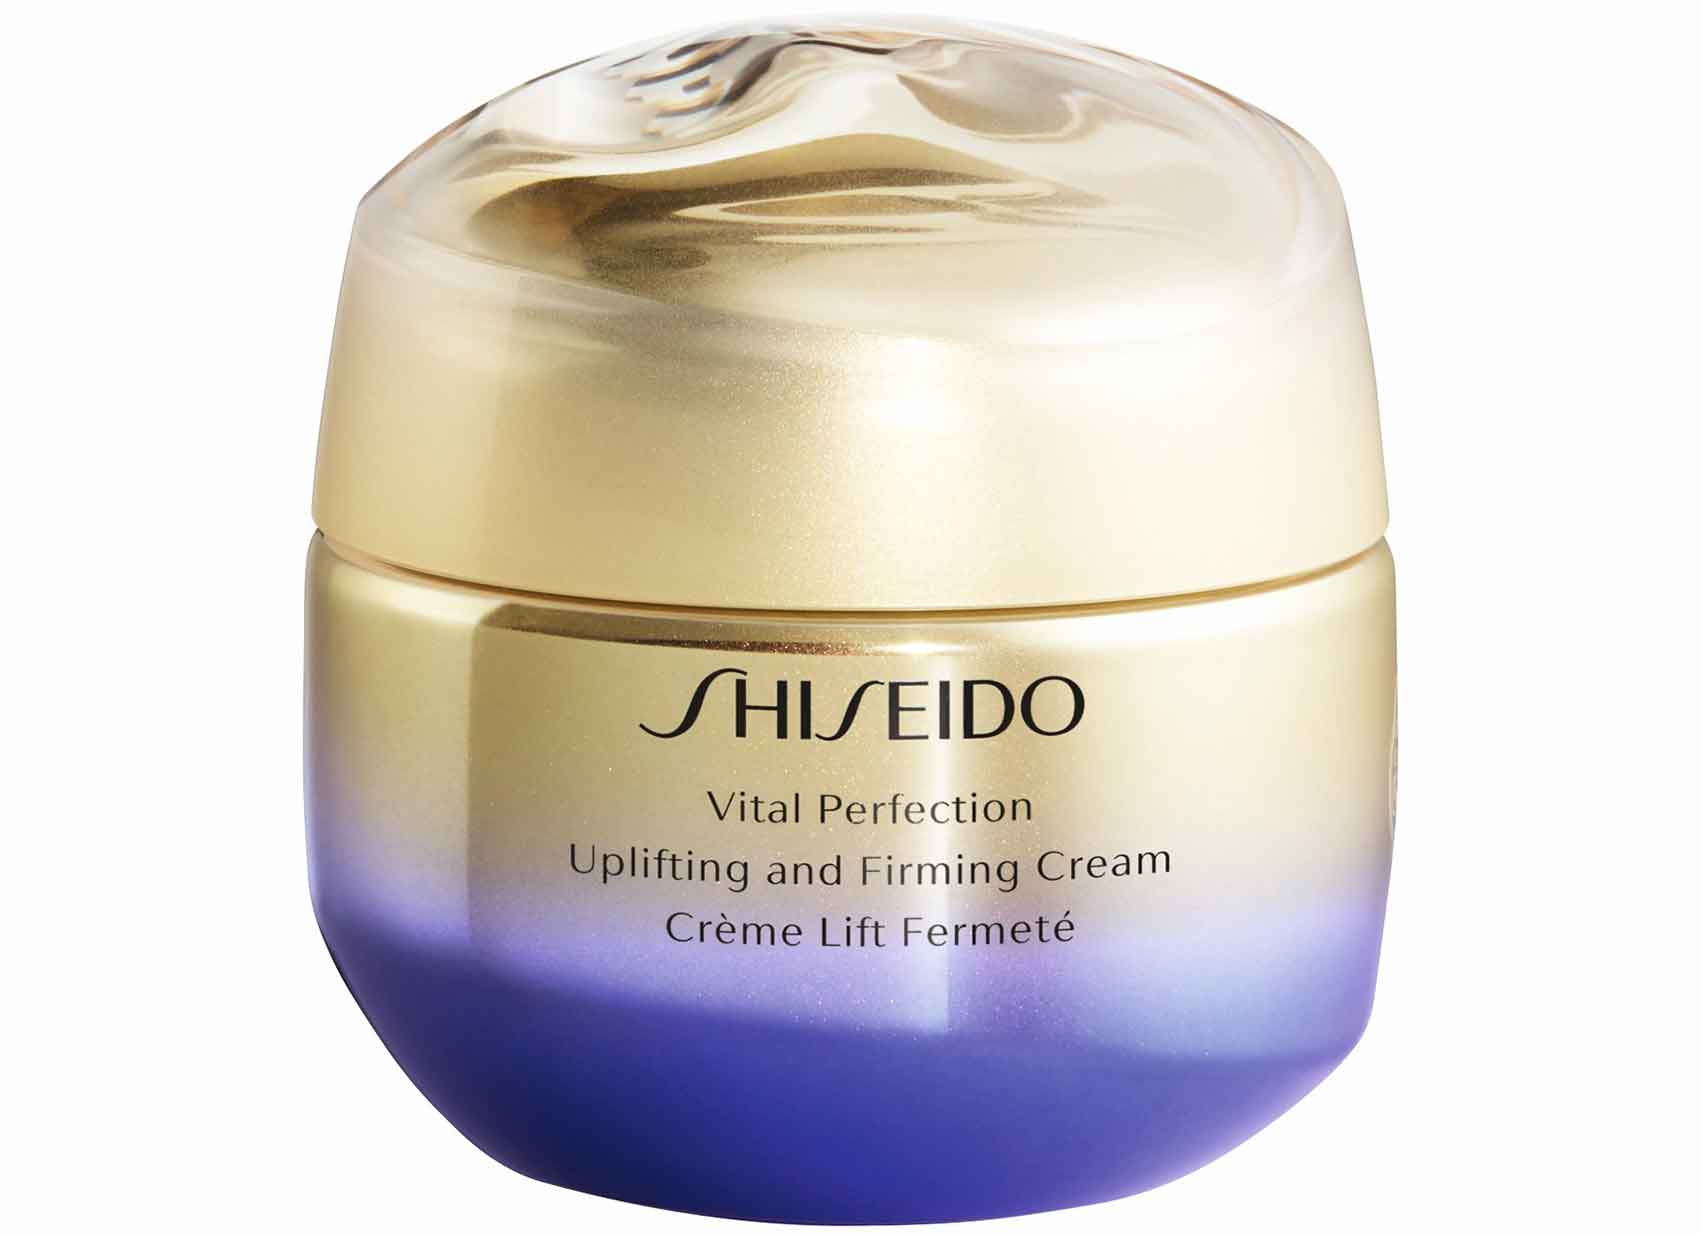 Shiseido-Vital-Perfection-Uplifting-and-Firming-Cream-ביוטי